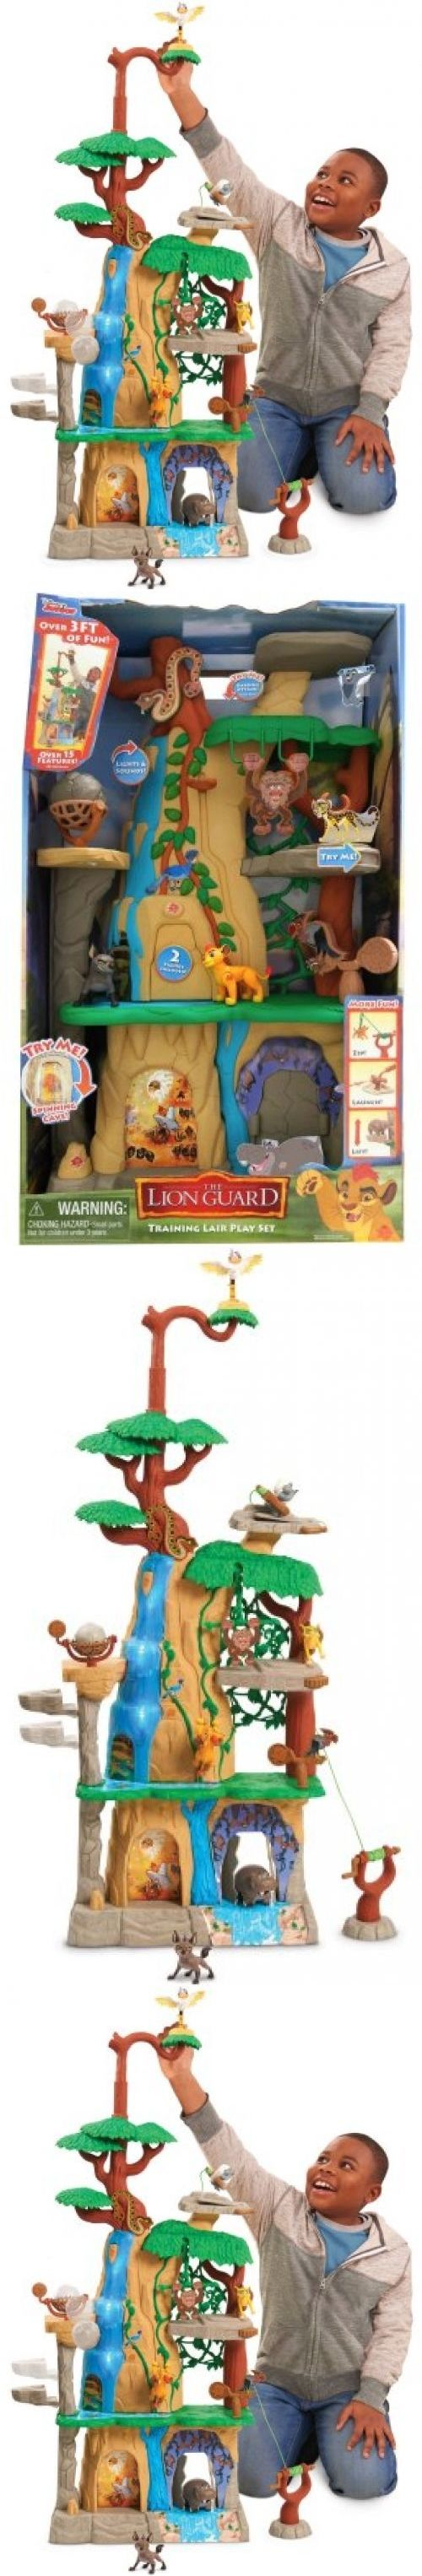 Feeding Sets 117386: Lion Guard Training Lair Playset Disney Junior Boy Or Girl Fun Interactive Toy -> BUY IT NOW ONLY: $54.95 on eBay!